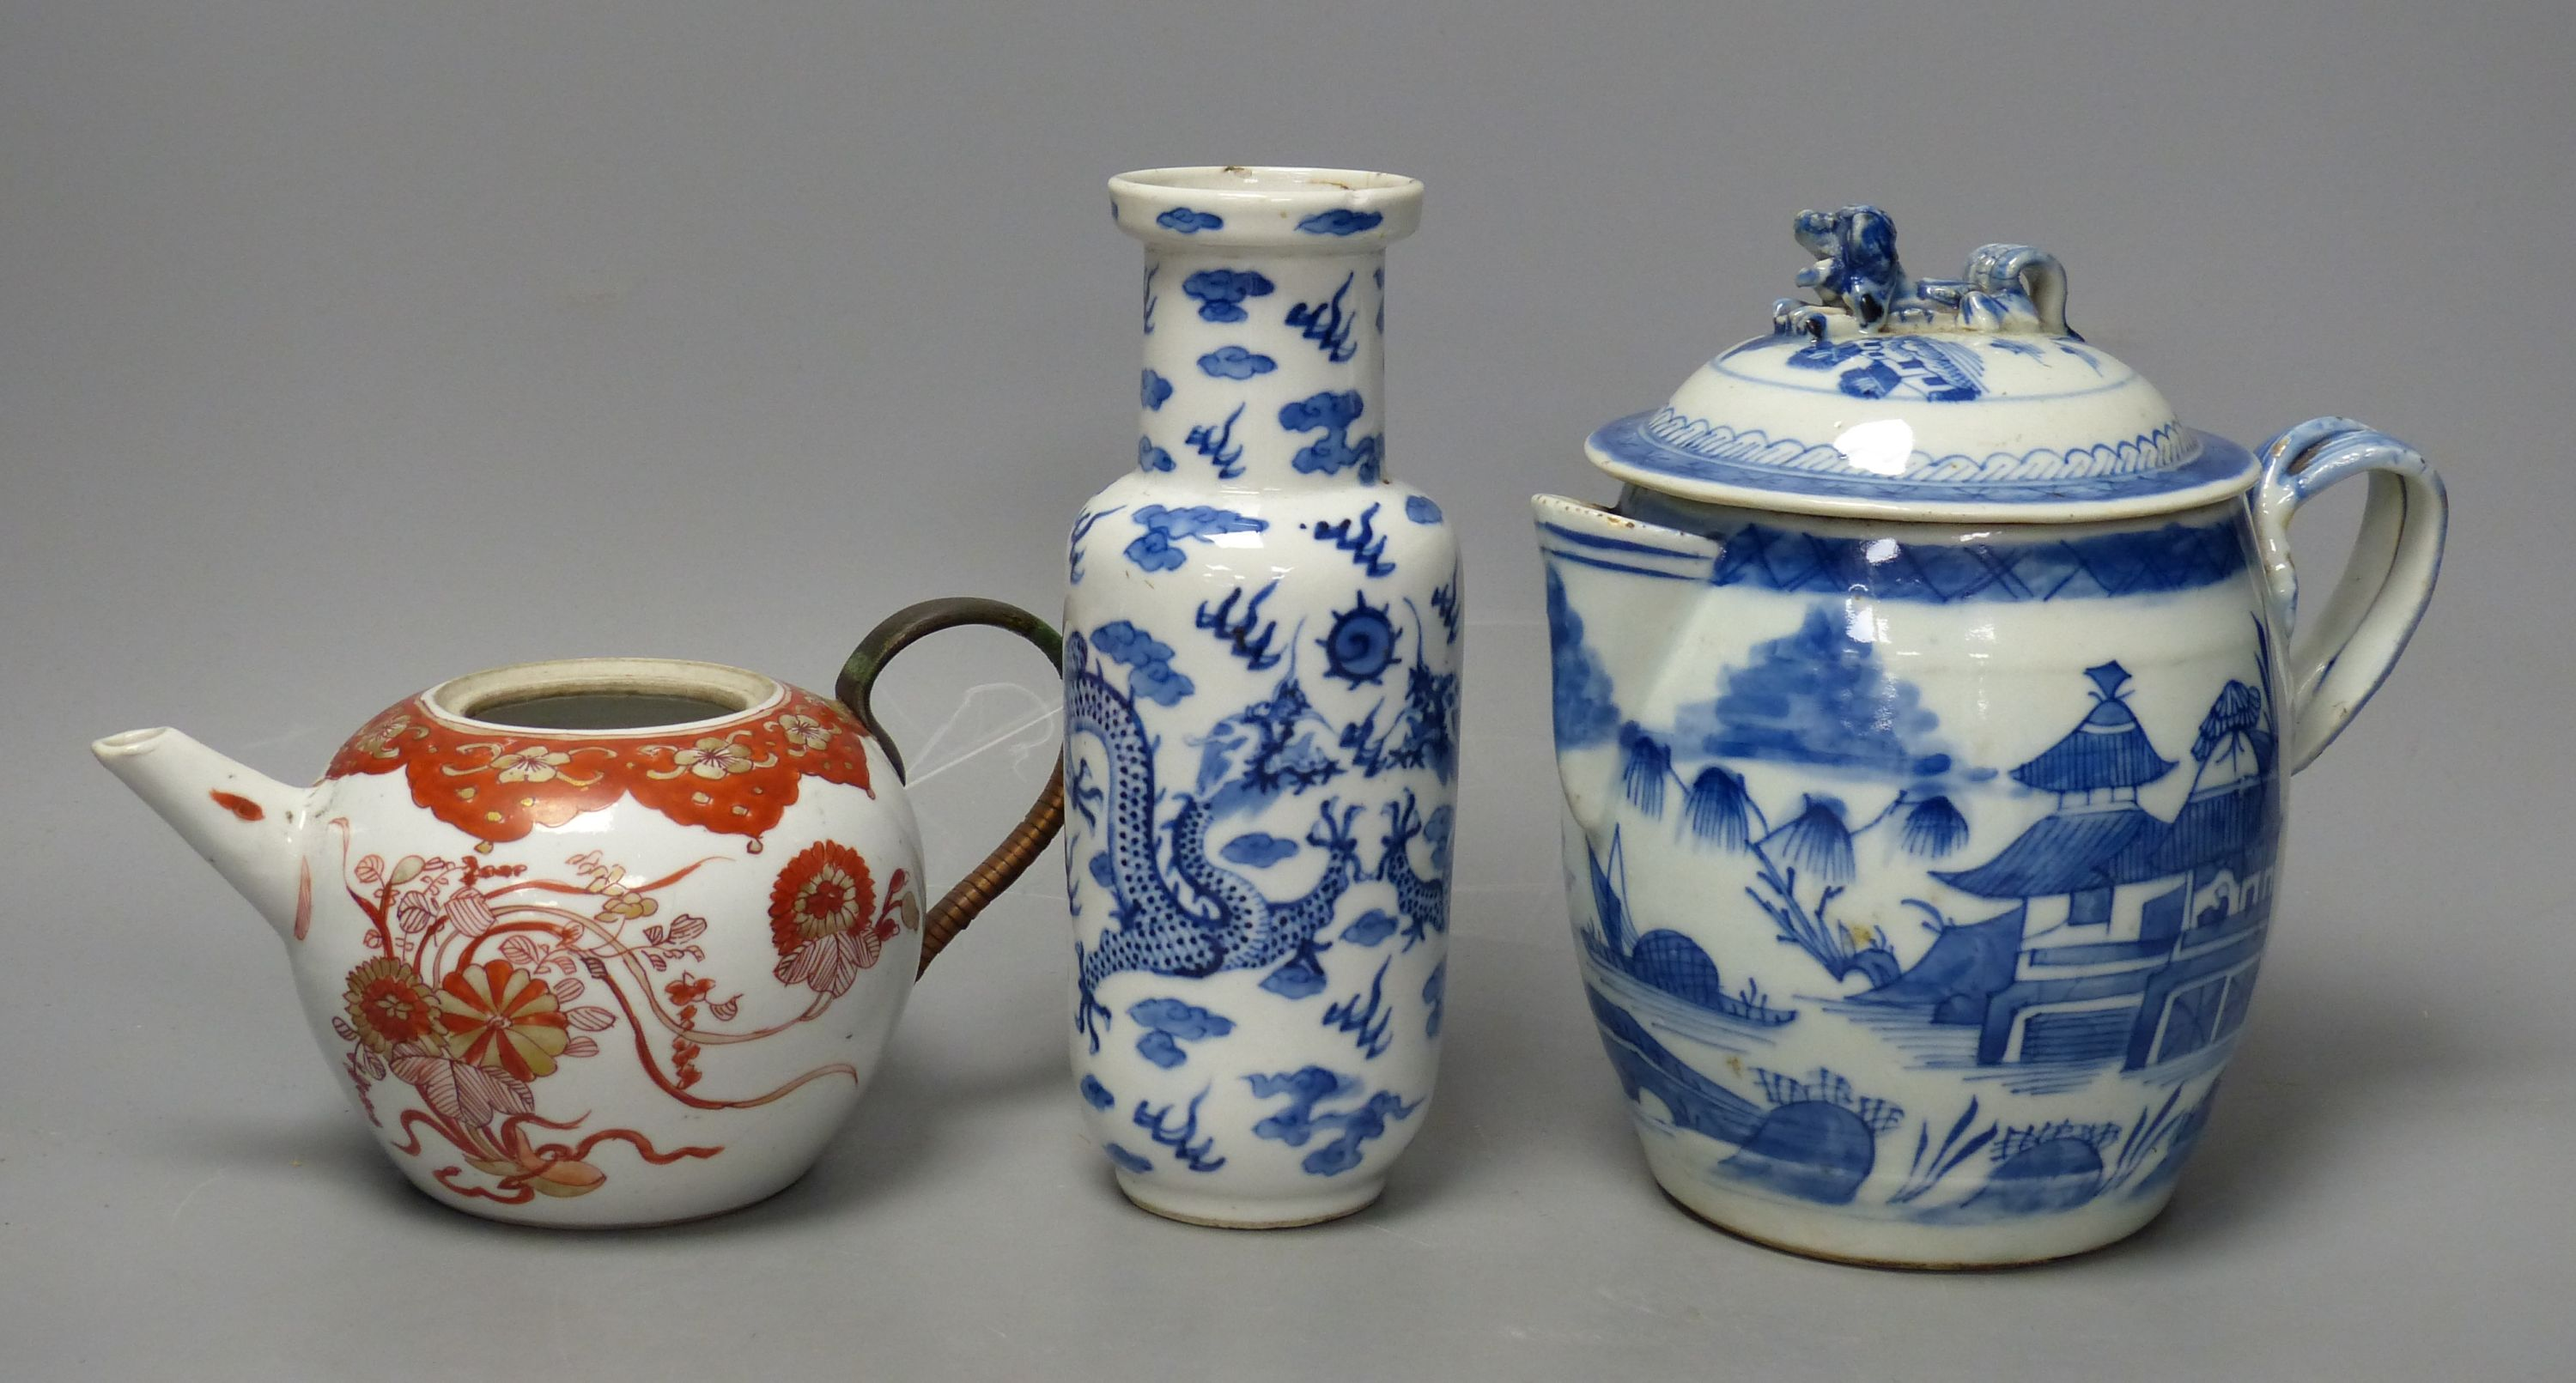 A 19th century Chinese blue and white covered jug, an early 20th century blue and white vase and a